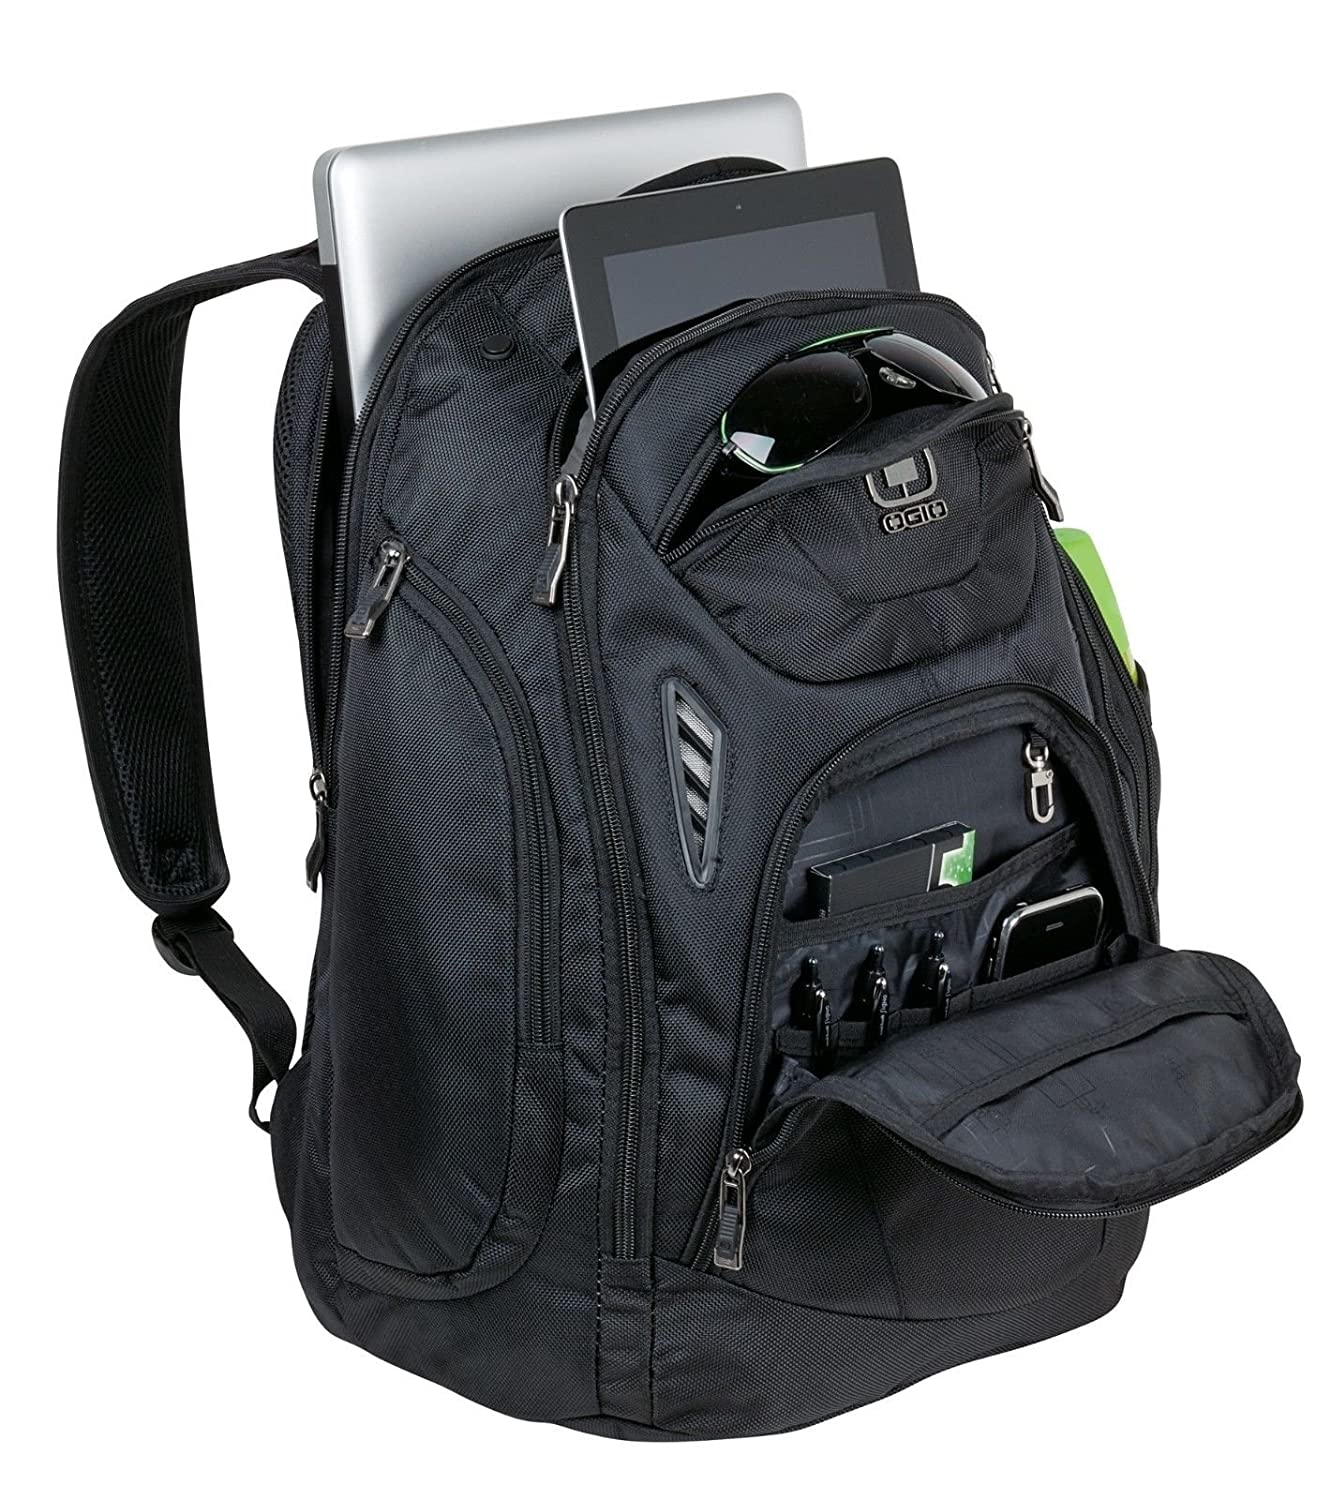 Amazon.com : OGIO Mercur Pack Black 17